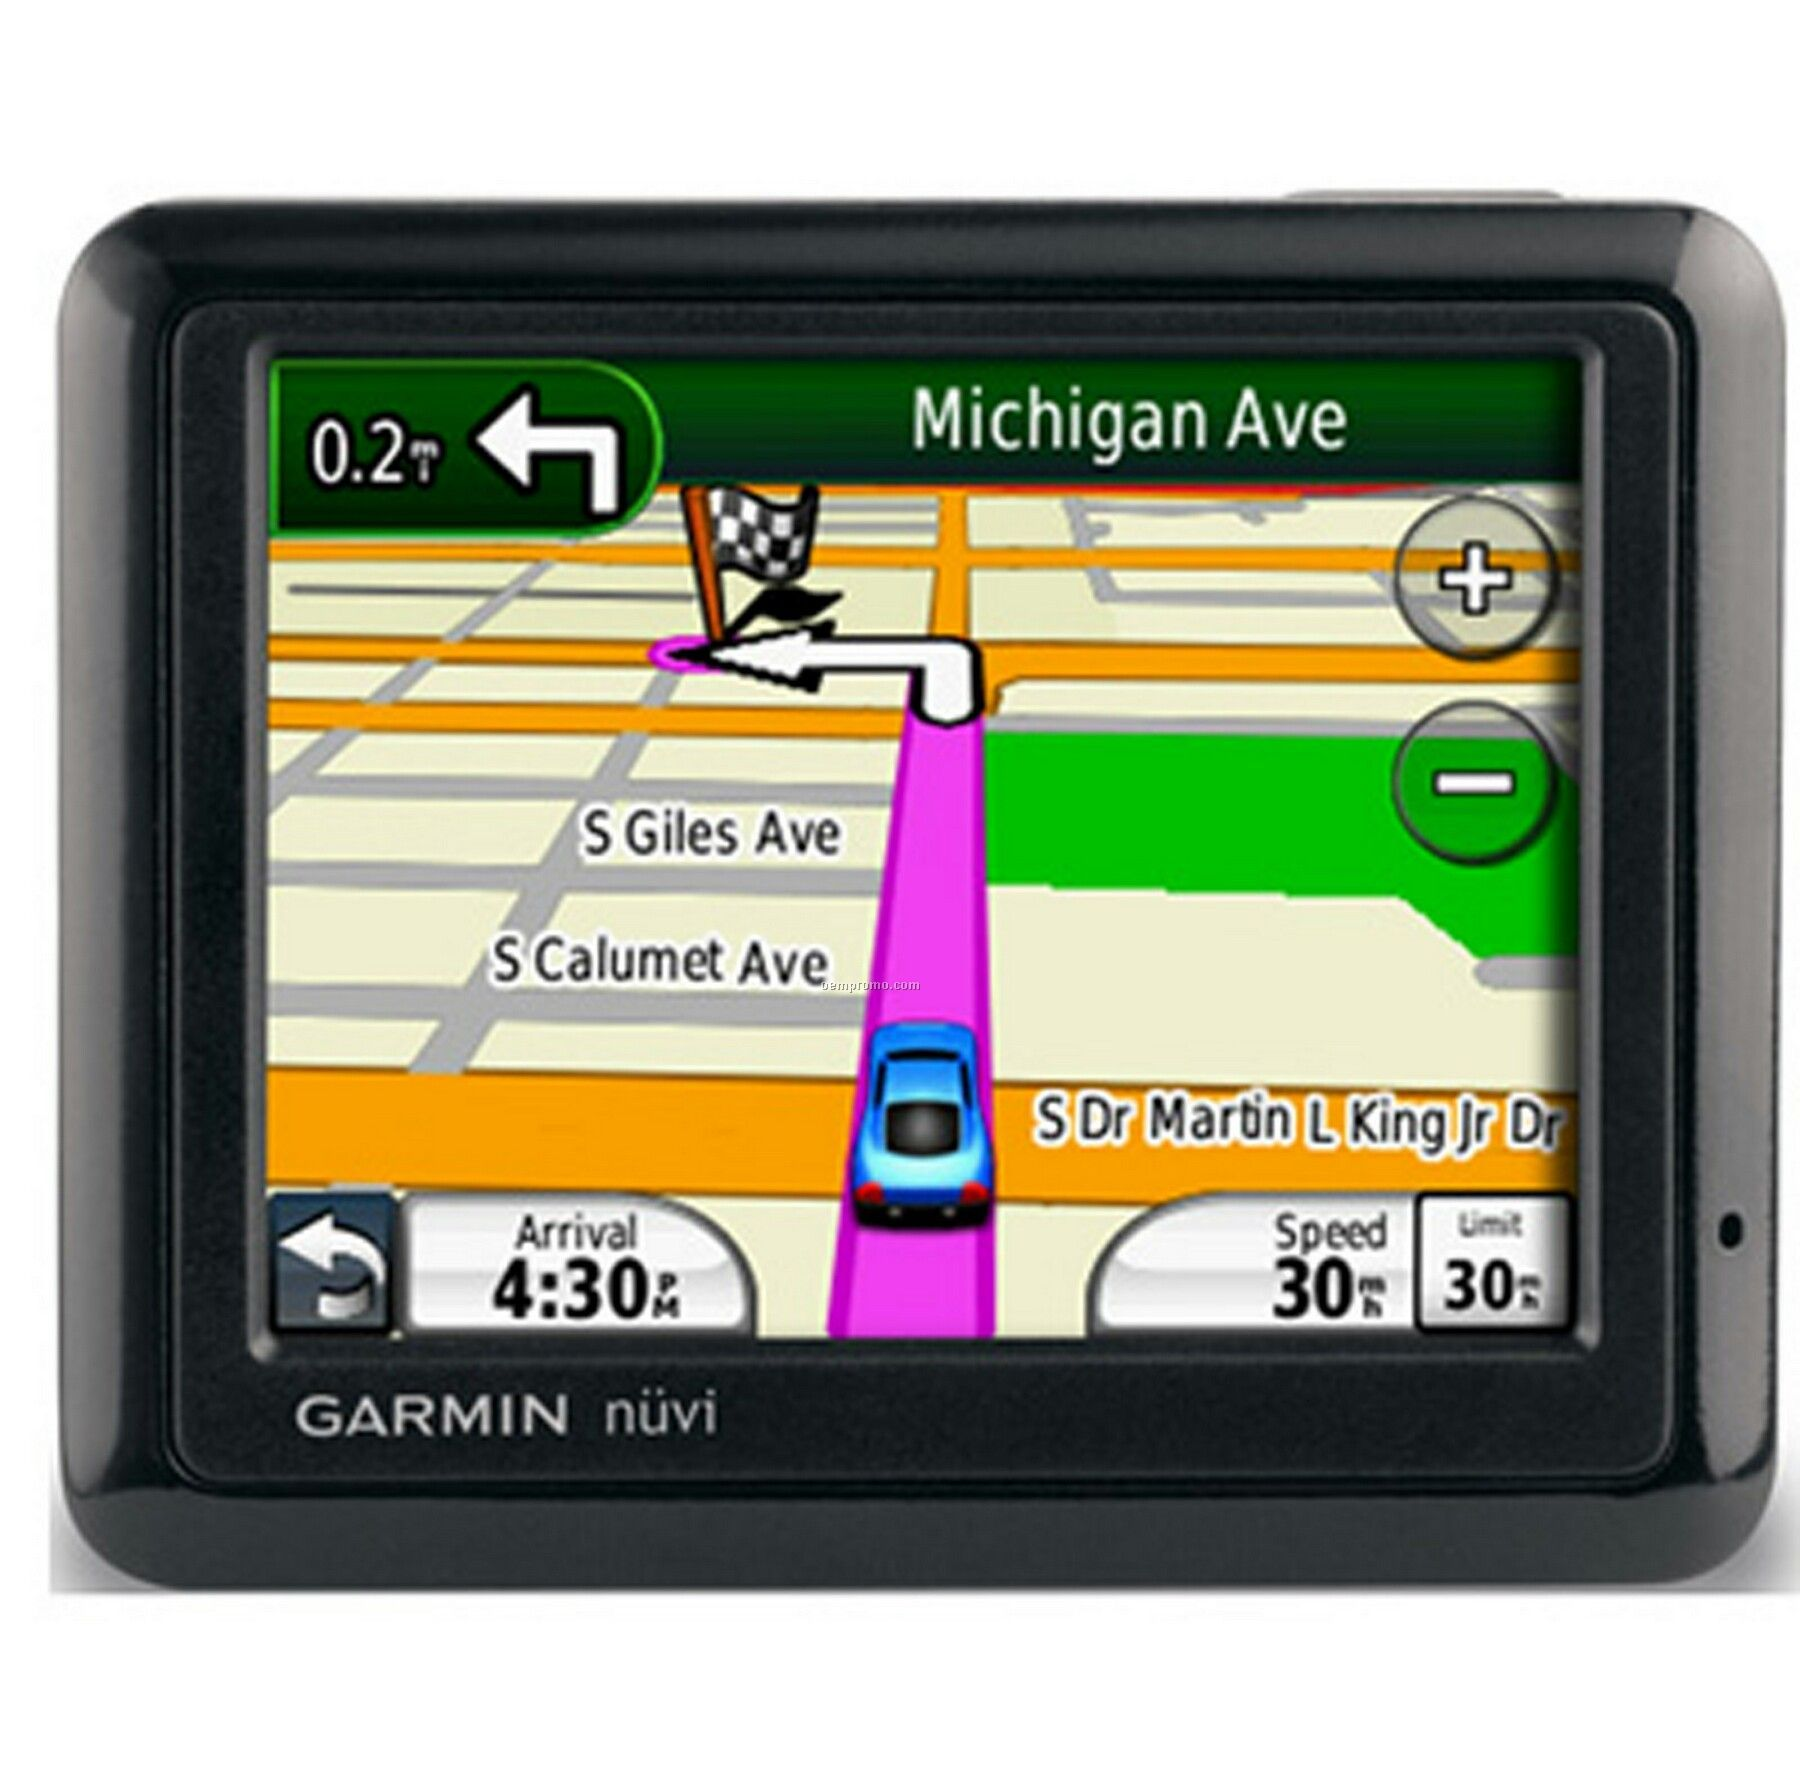 garmin nuvi 1390t gps vehicle navigation system bluetooth enable china wholesale garmin nuvi. Black Bedroom Furniture Sets. Home Design Ideas